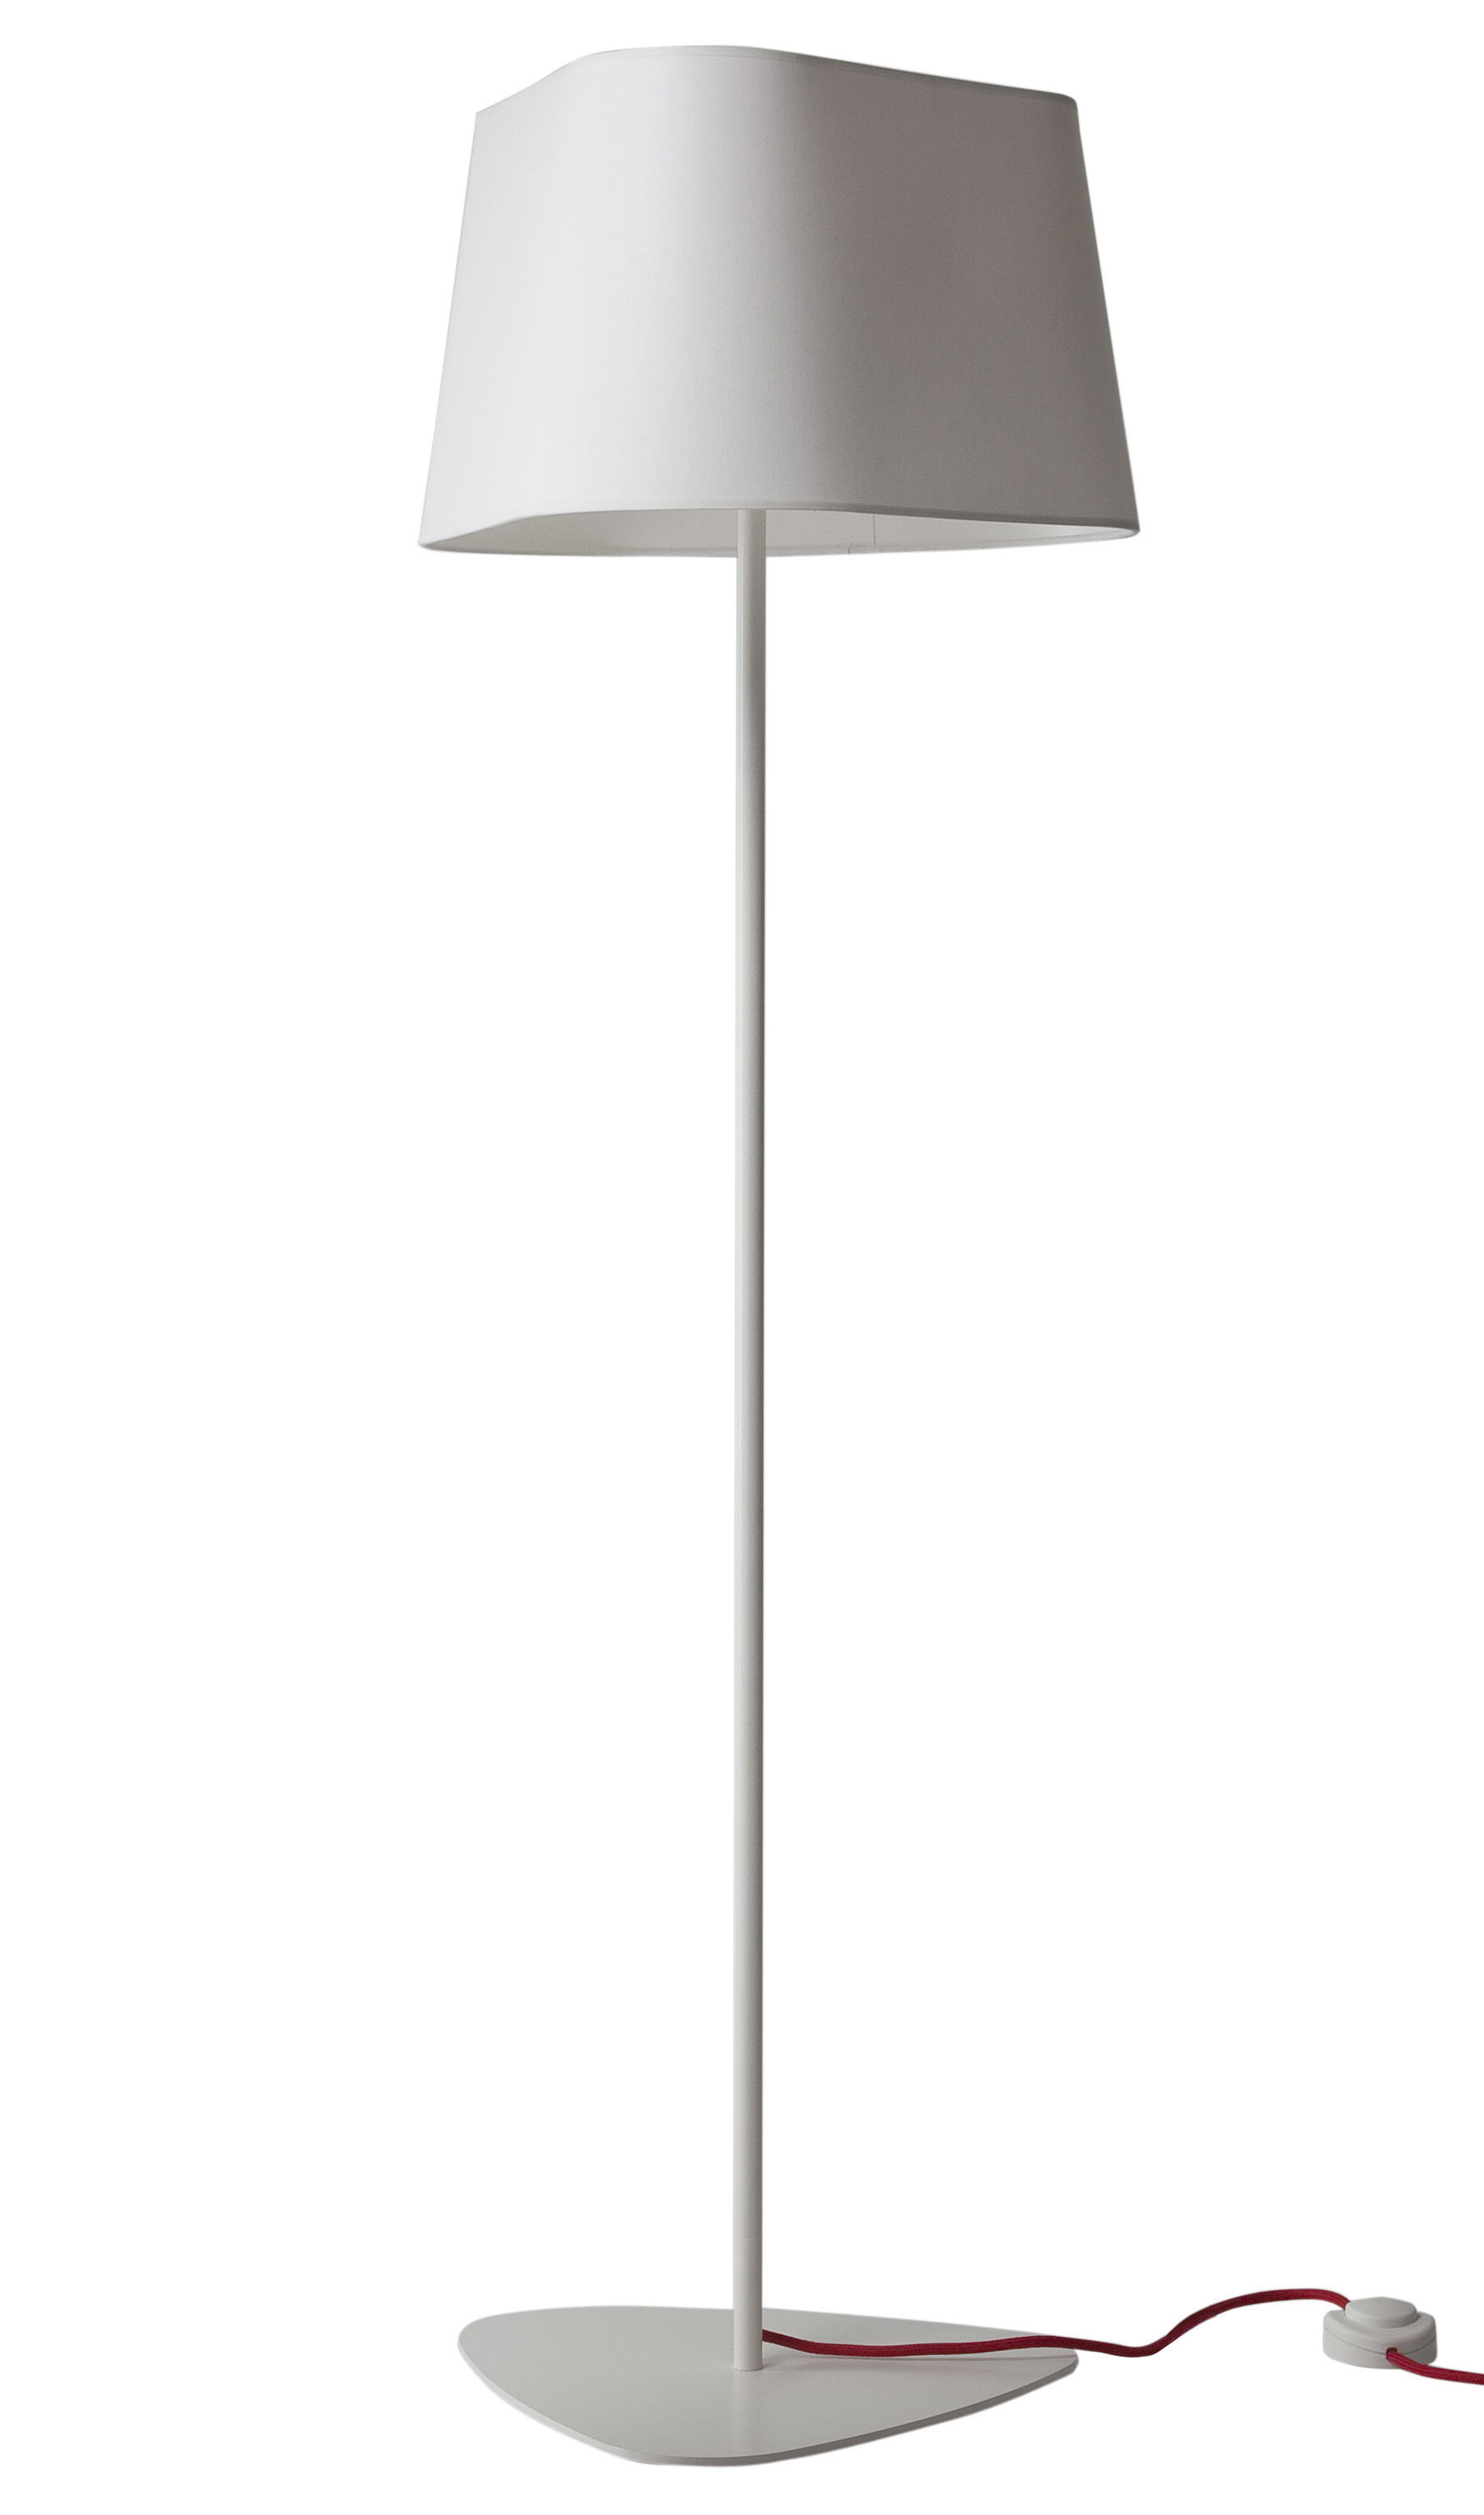 Lighting - Floor lamps - Grand Nuage XL Floor lamp by Designheure - H 162 cm - White fabric - Cotton canvas, Lacquered steel